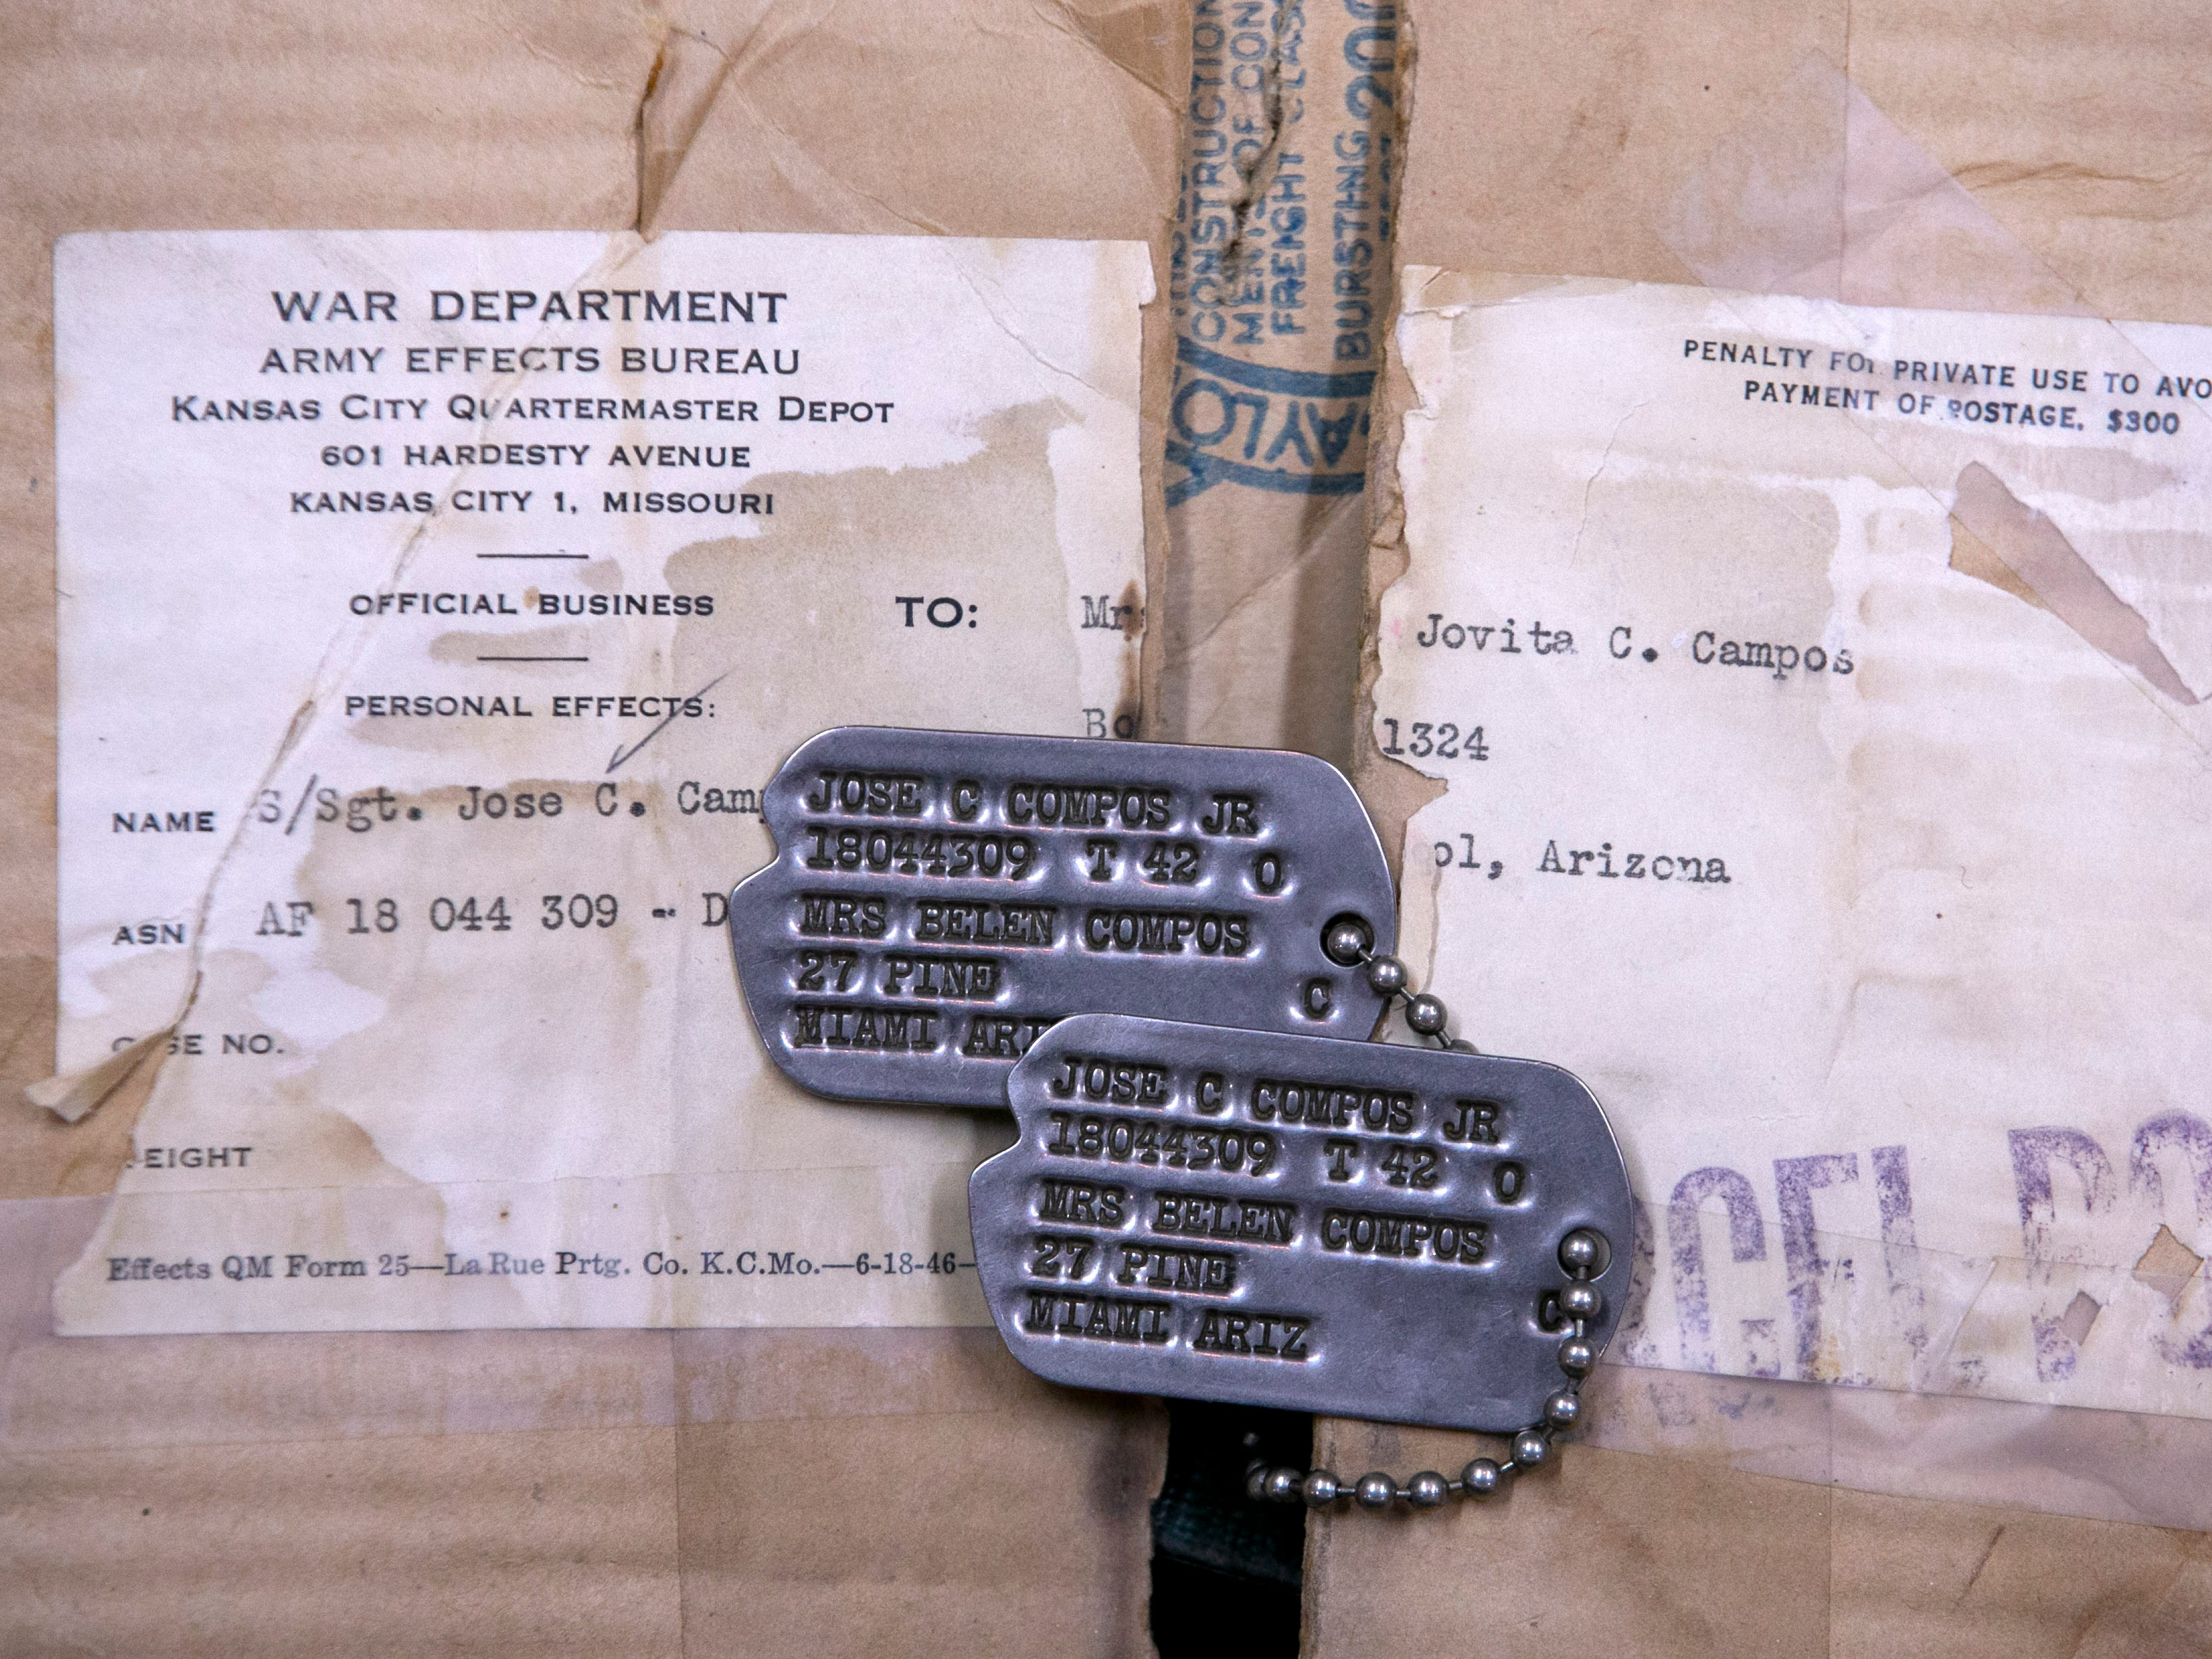 The dog tags of Airman Joe Campos who served during World War II in the European theater in 1943. After World War II Campos would re-enlist. It is believed that Staff Sgt. Joe Campos, a gunner on a B-26 bomber was likely the first American killed in the Korean War when his plane went down in the Yellow Sea on June 28, 1950.